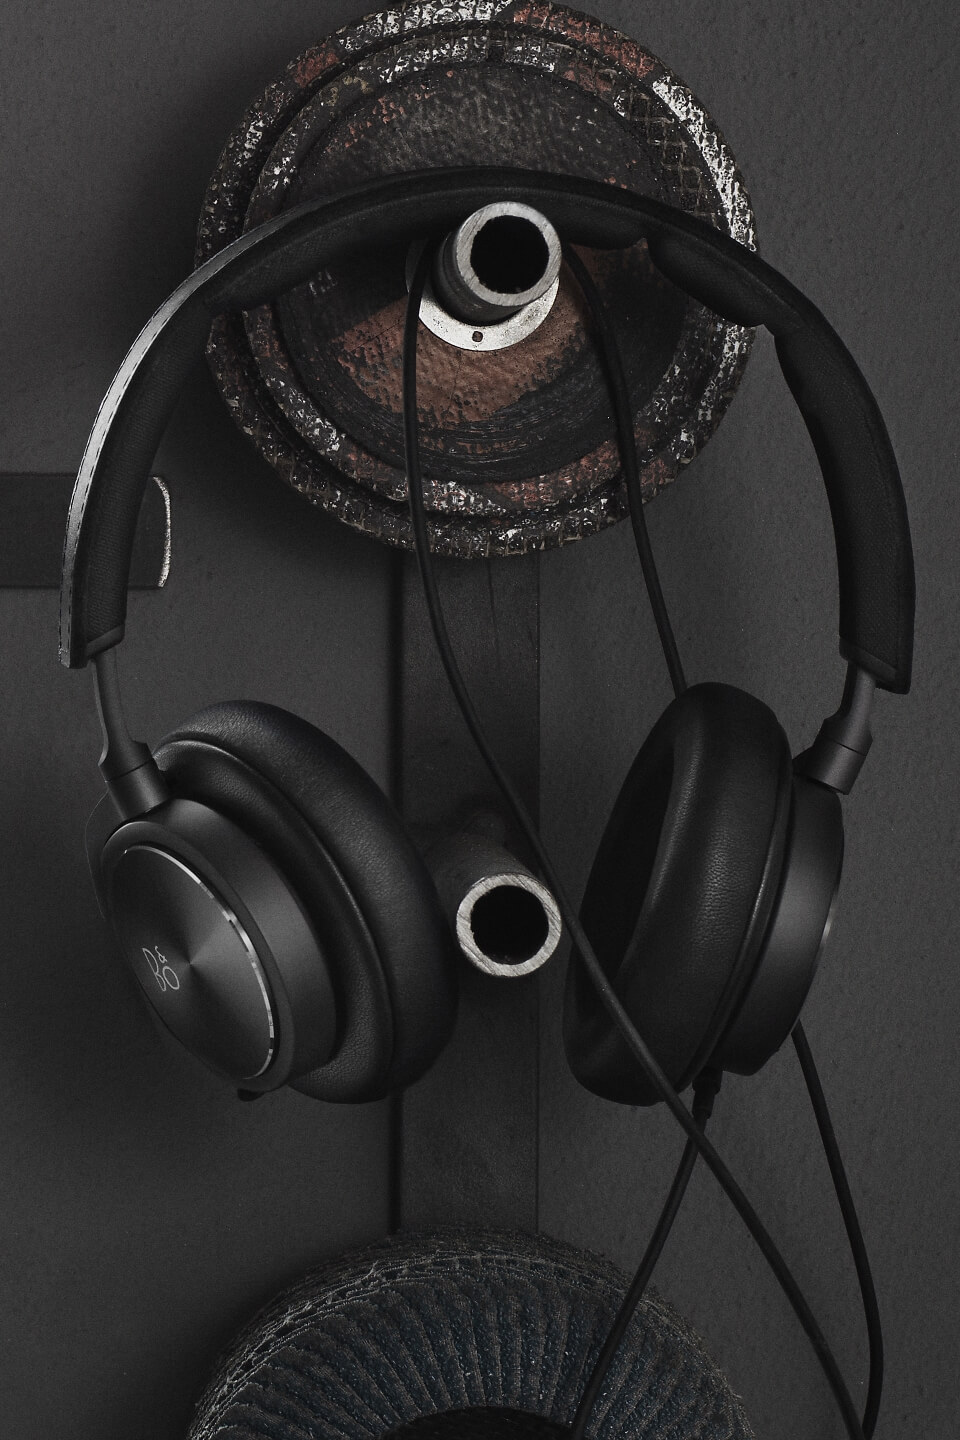 BeoPlay H6 black